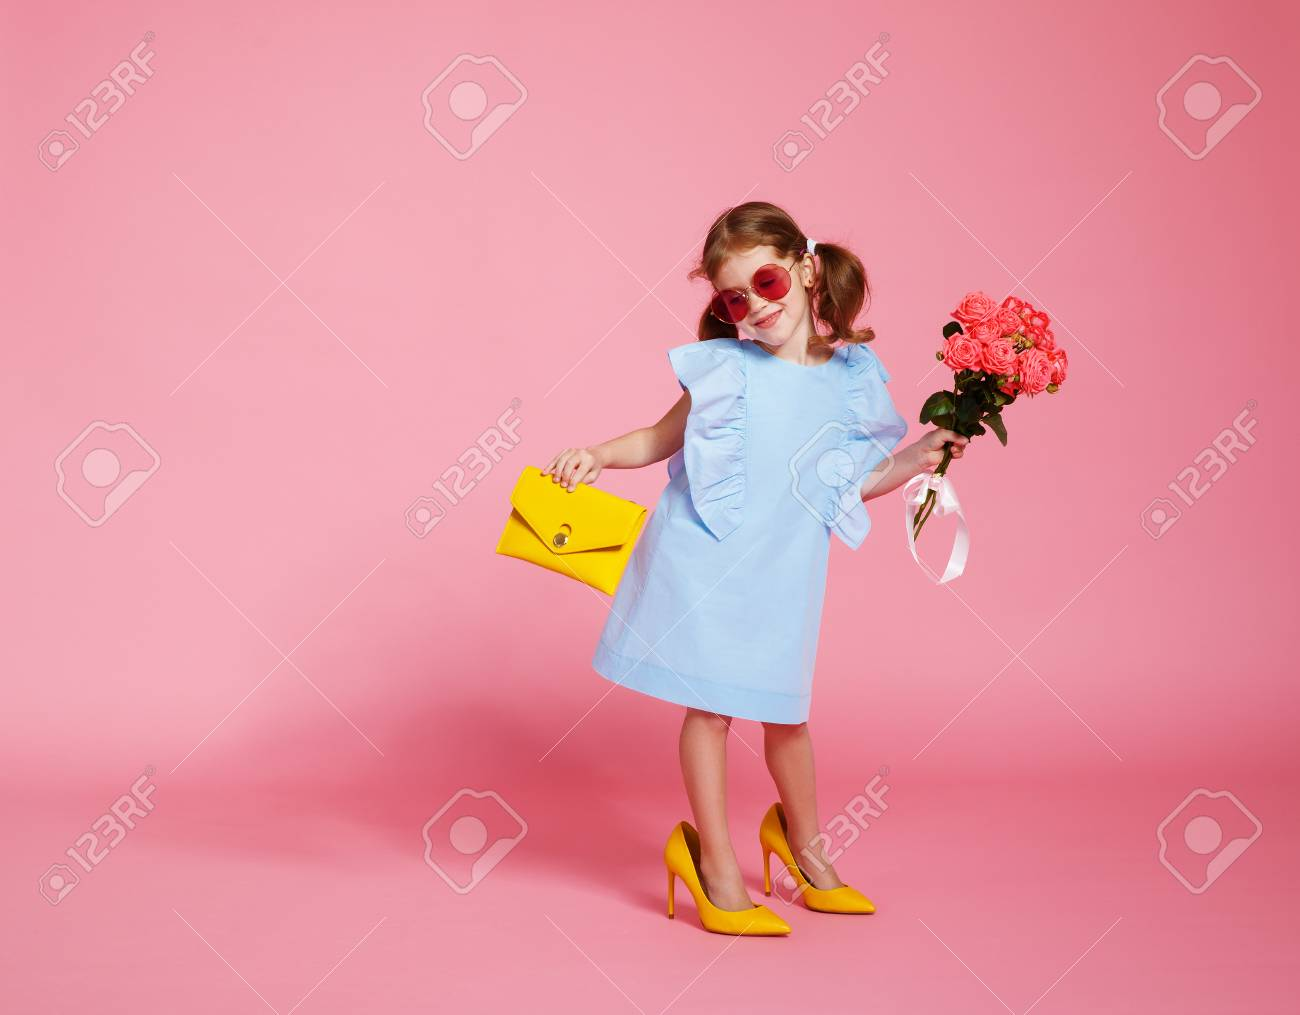 funny child girl fashionista in big mother's yellow shoes on colored background - 101297462